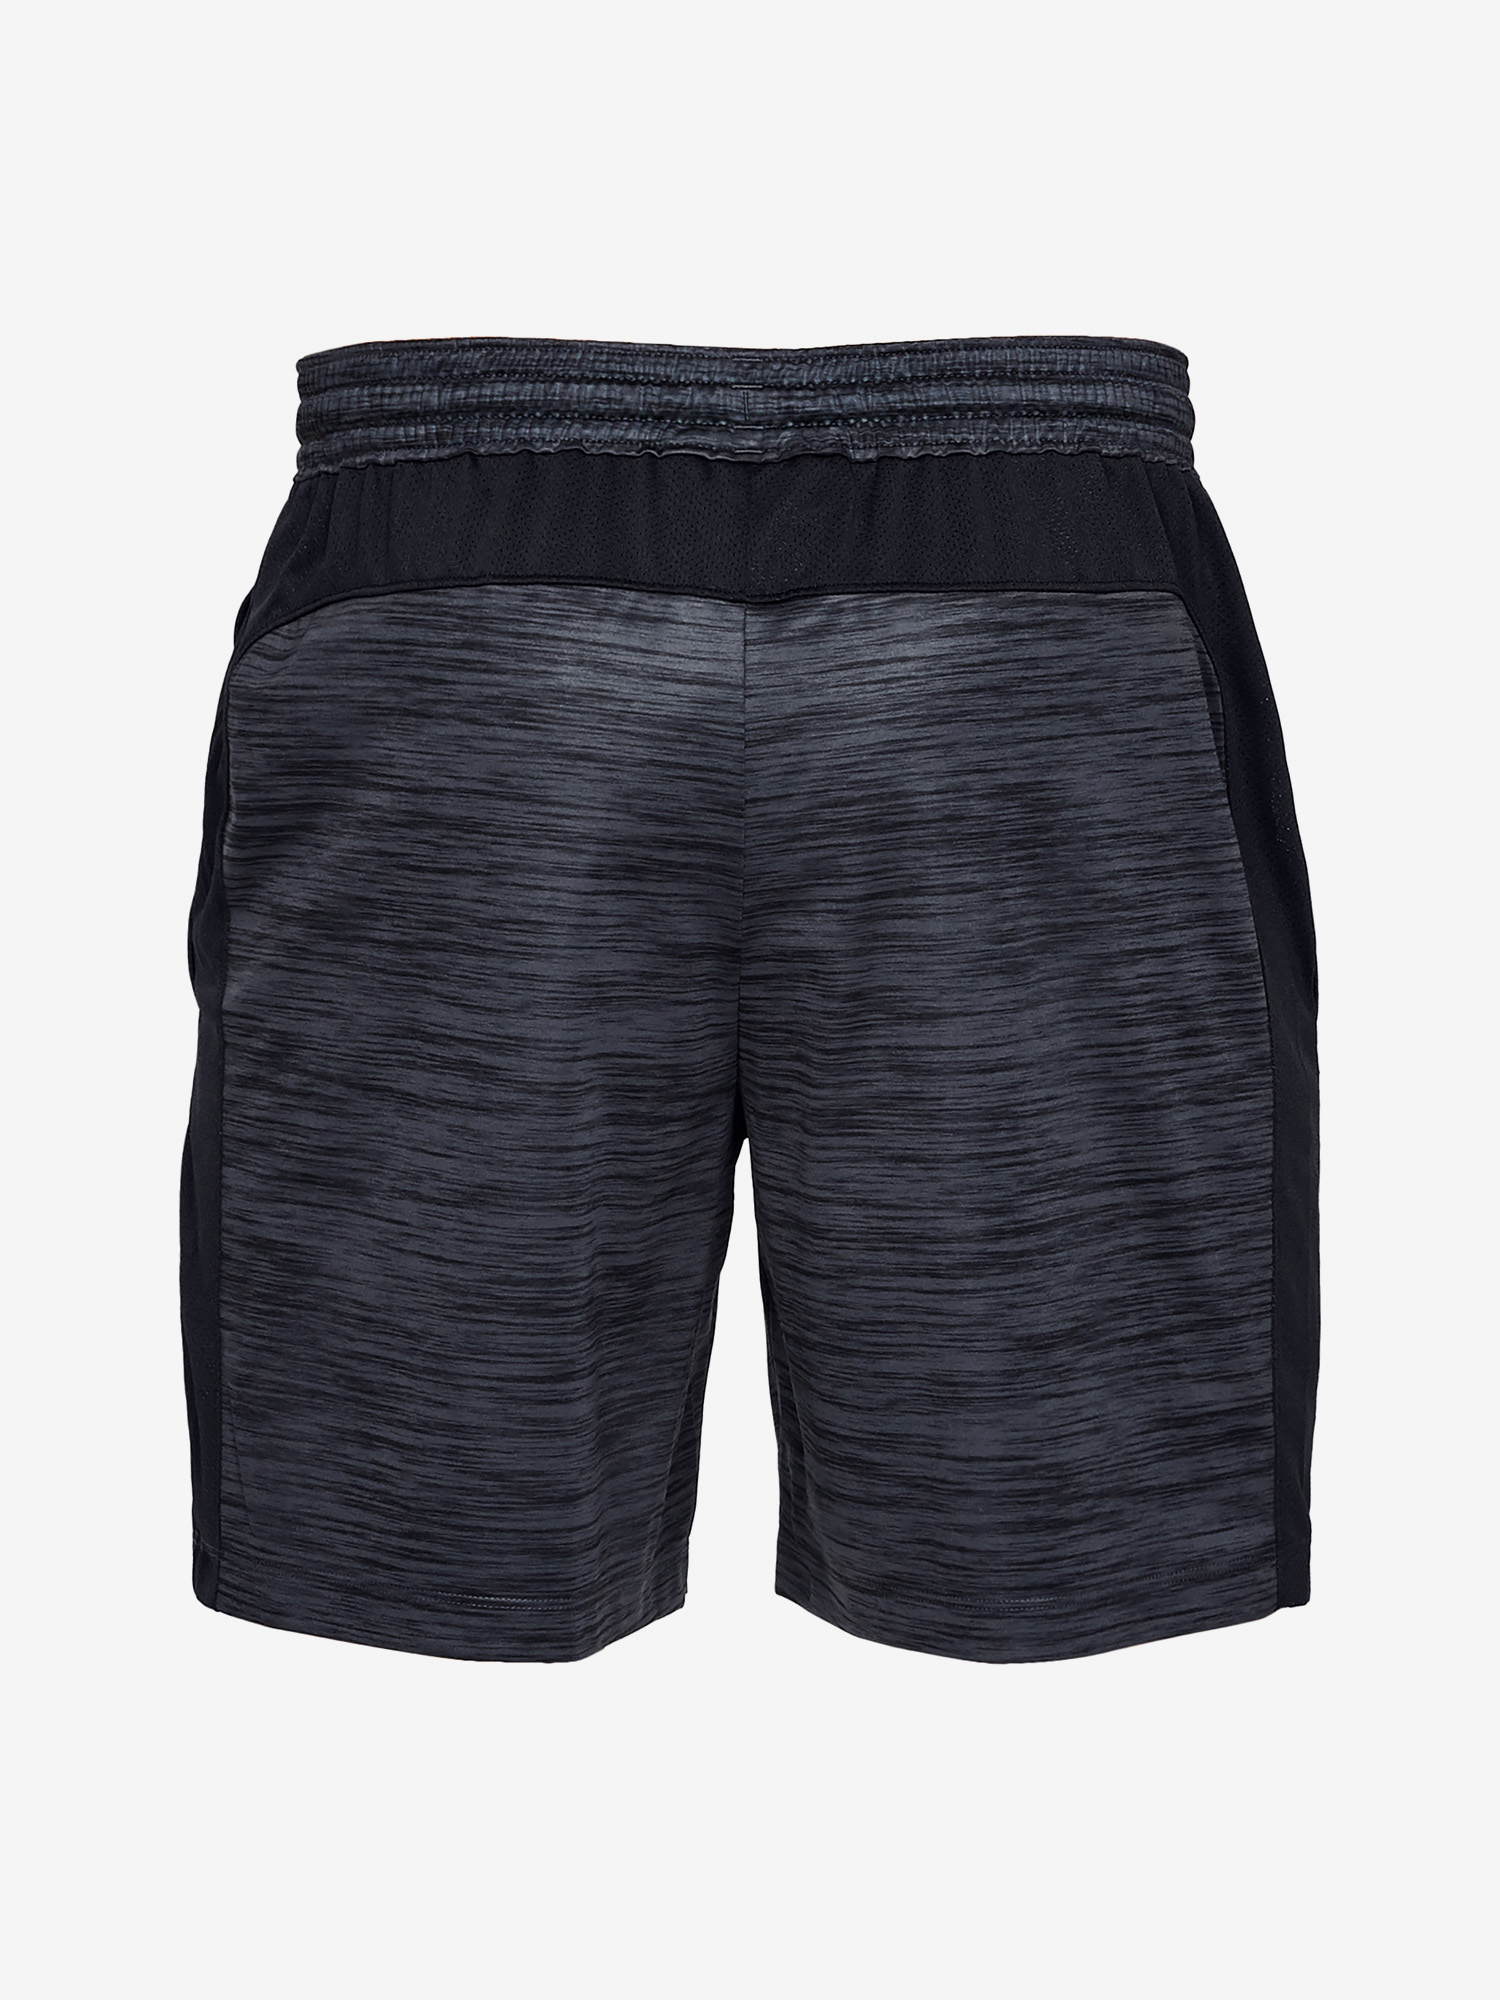 Kraťasy Under Armour UA MK-1 7in Twist Shorts-BLK (4)